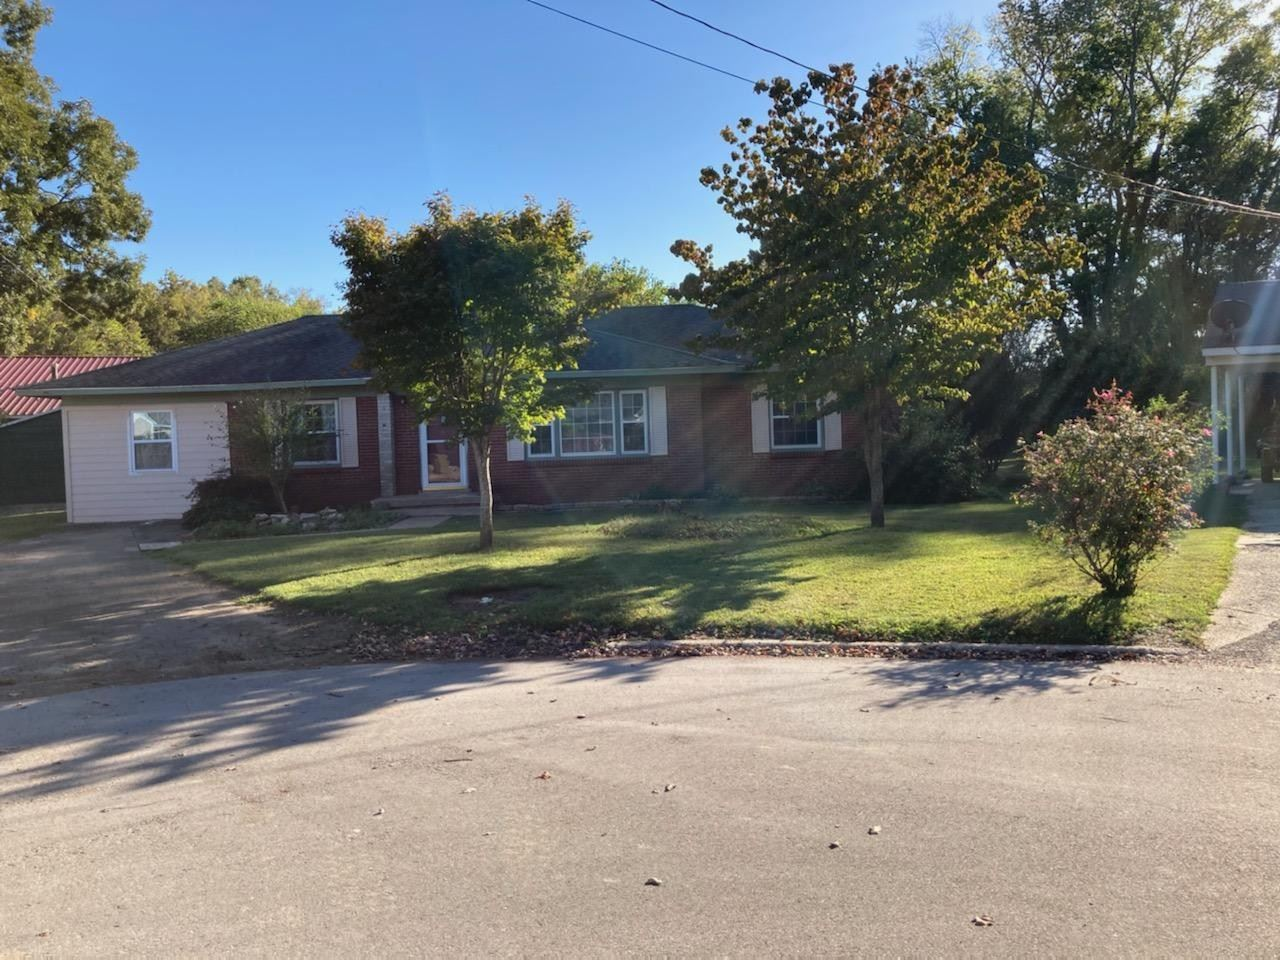 Photo of 708 South Circle, Lawrenceburg, TN 38464 (MLS # 2200664)